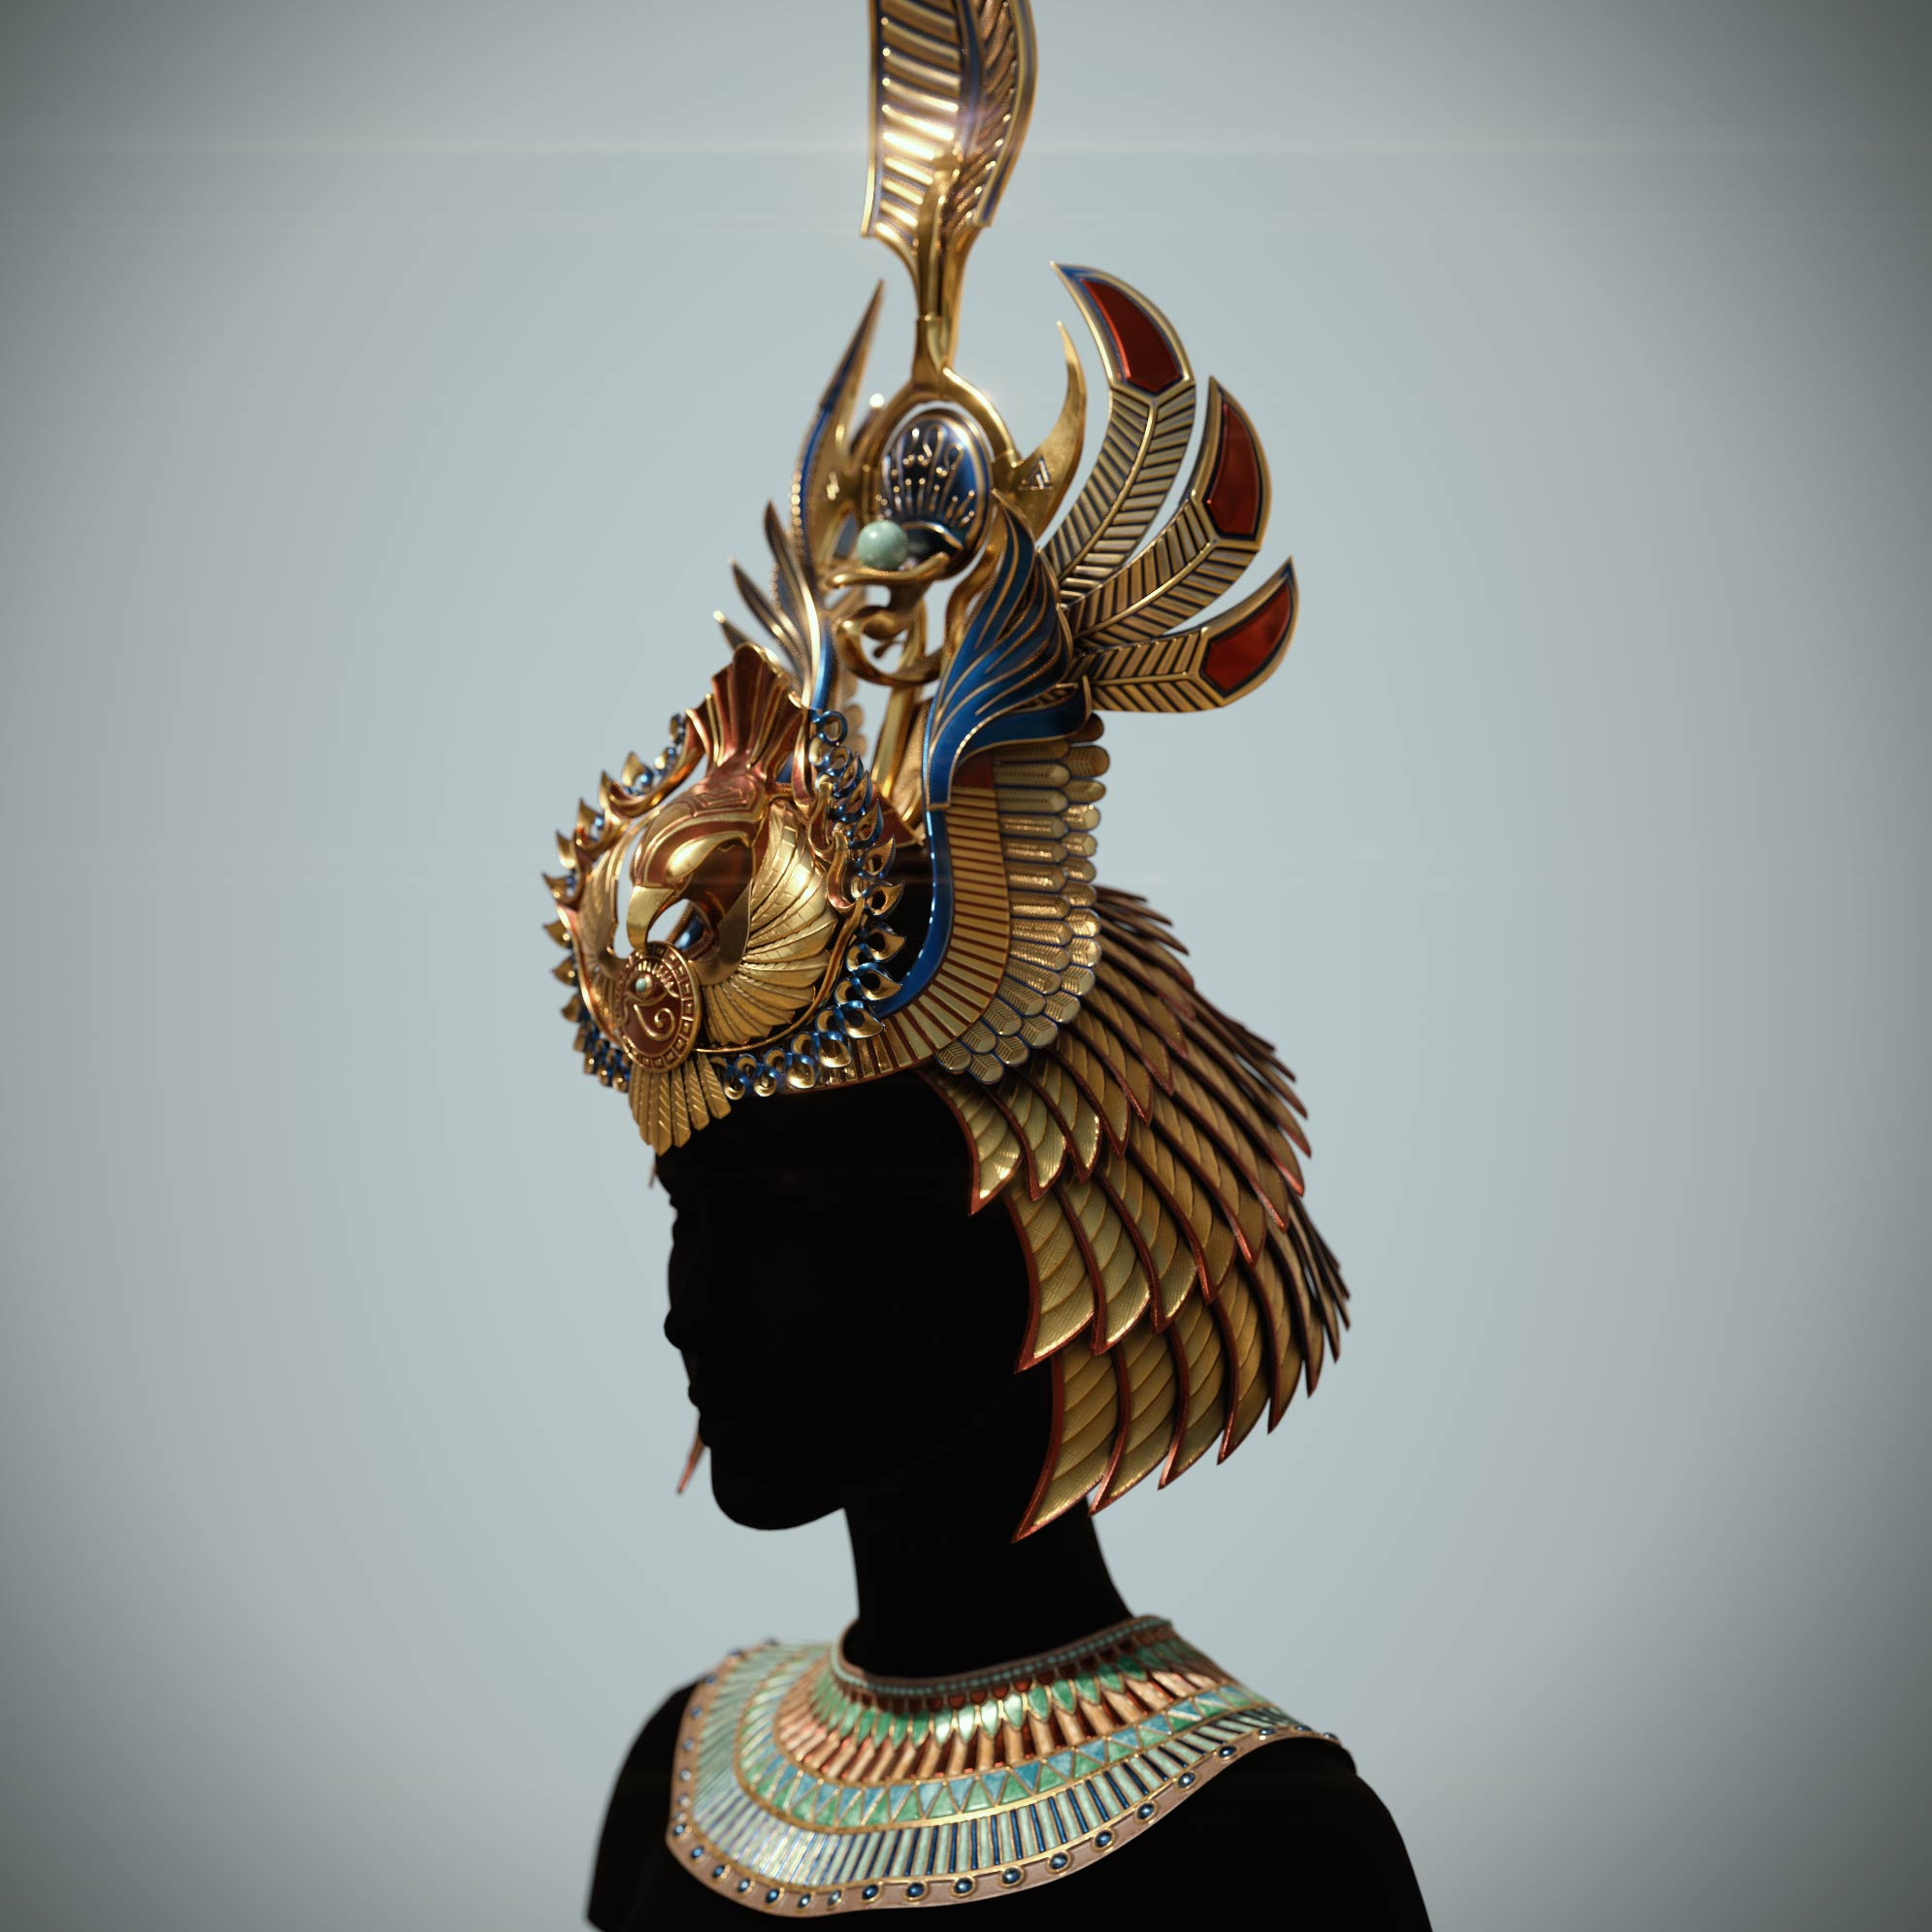 cleopatra_crown_zbrush_sculpting Egyptian queen crown